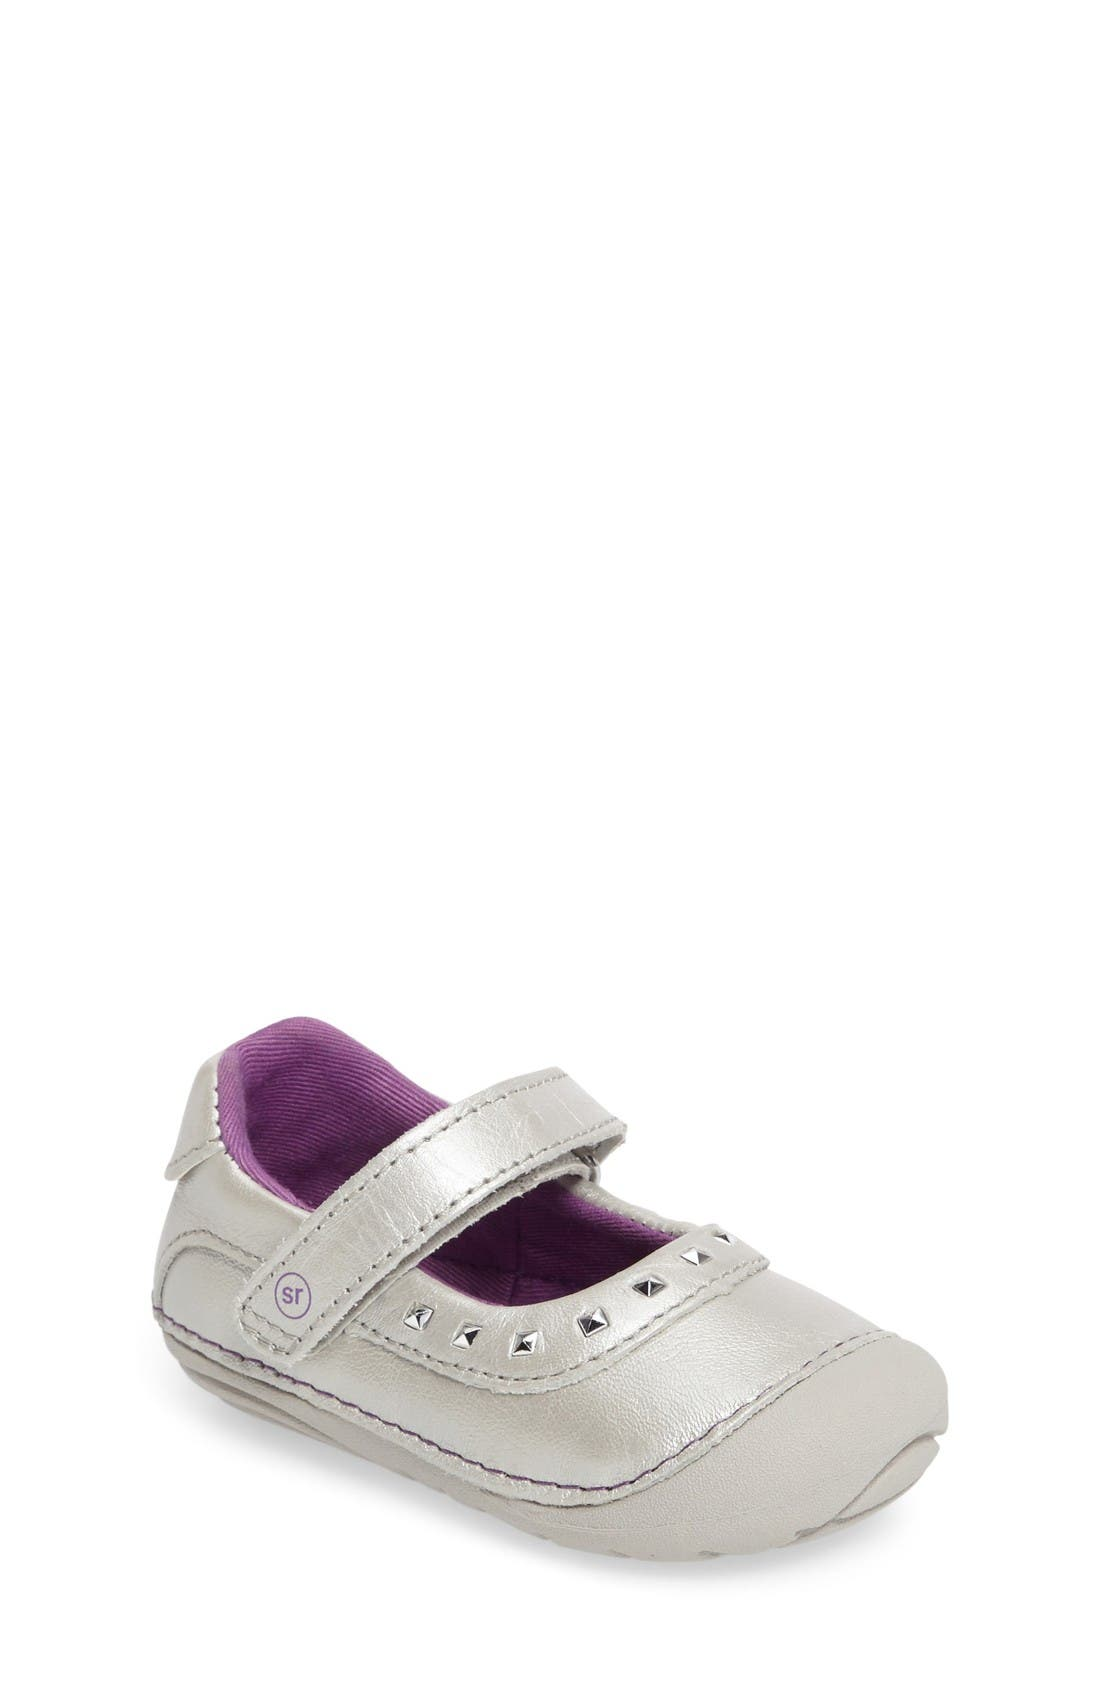 Alternate Image 1 Selected - Stride Rite Soft Motion™ Arabelle Mary Jane (Baby & Walker)